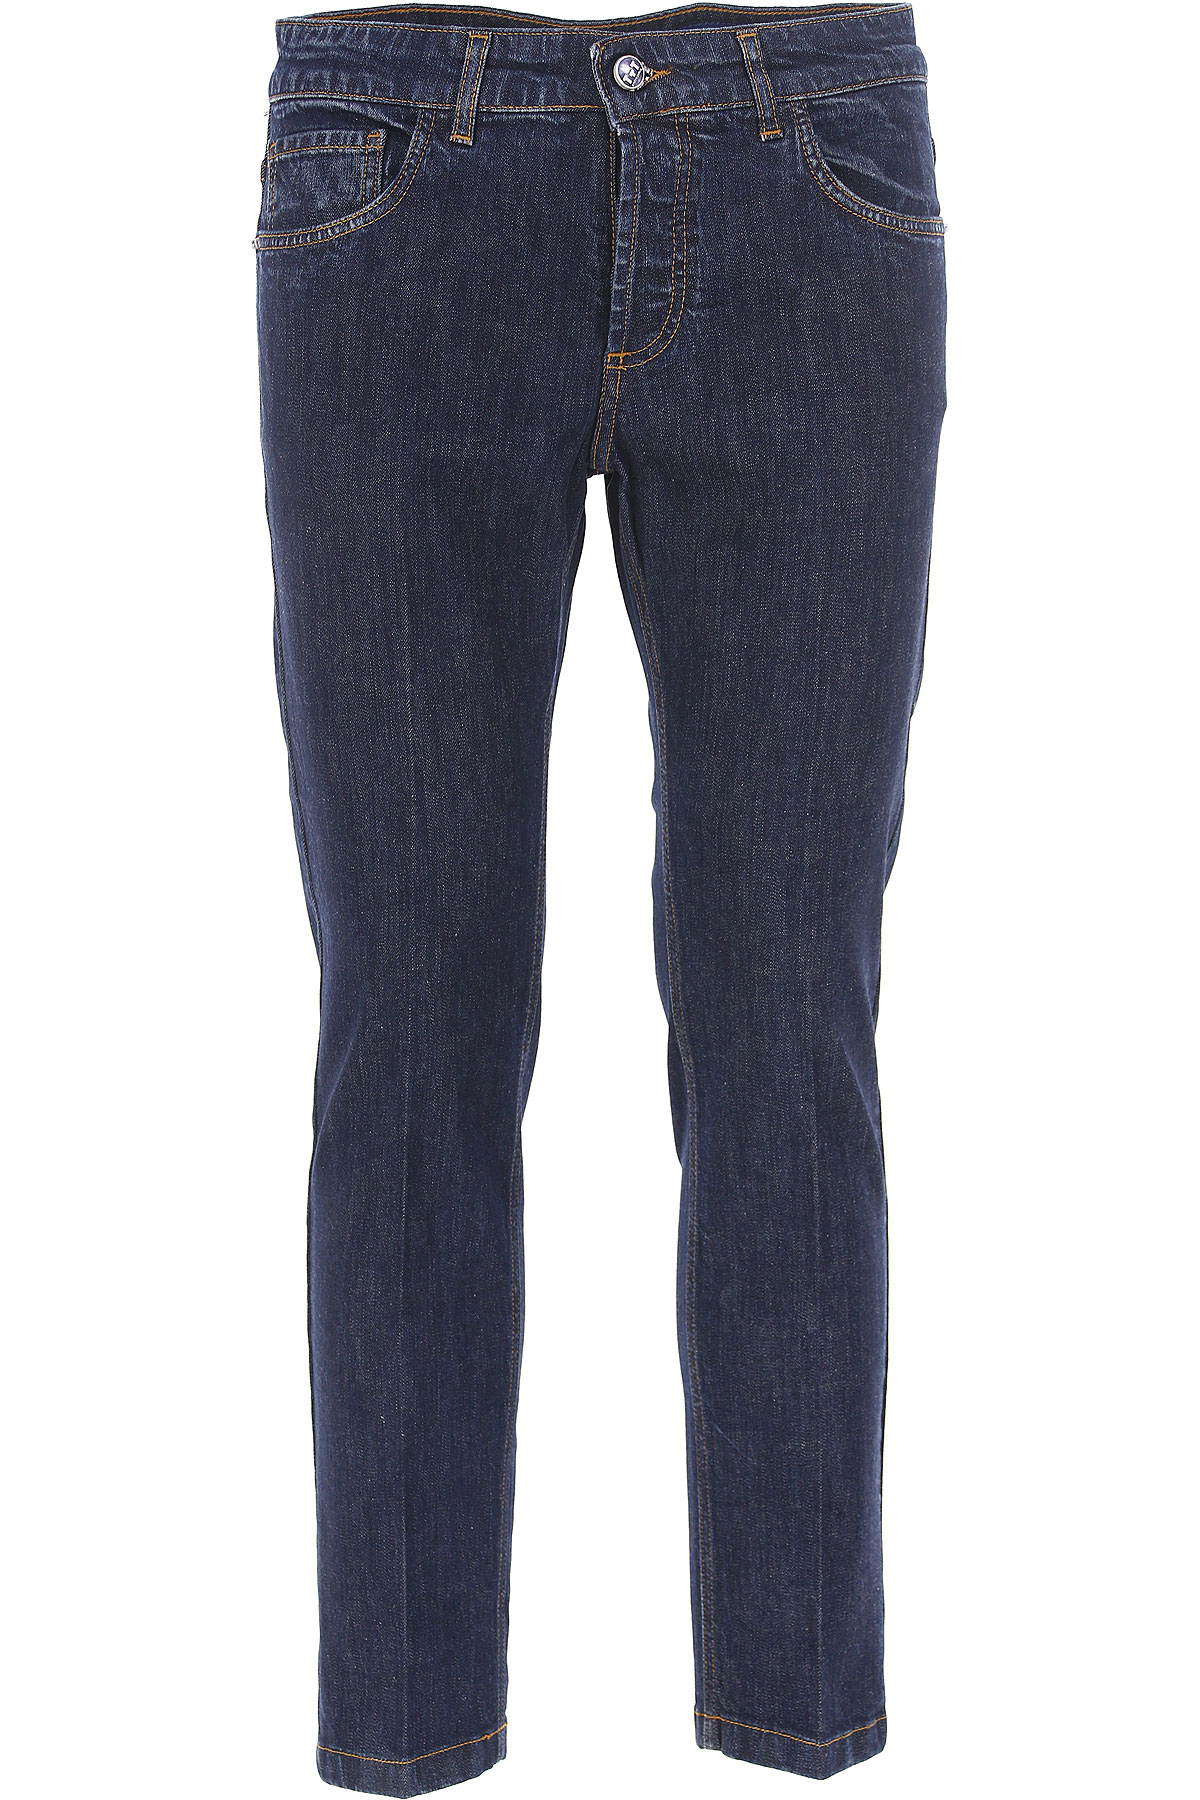 Image of Entre Amis Jeans On Sale in Outlet, Denim, Cotton, 2017, 30 32